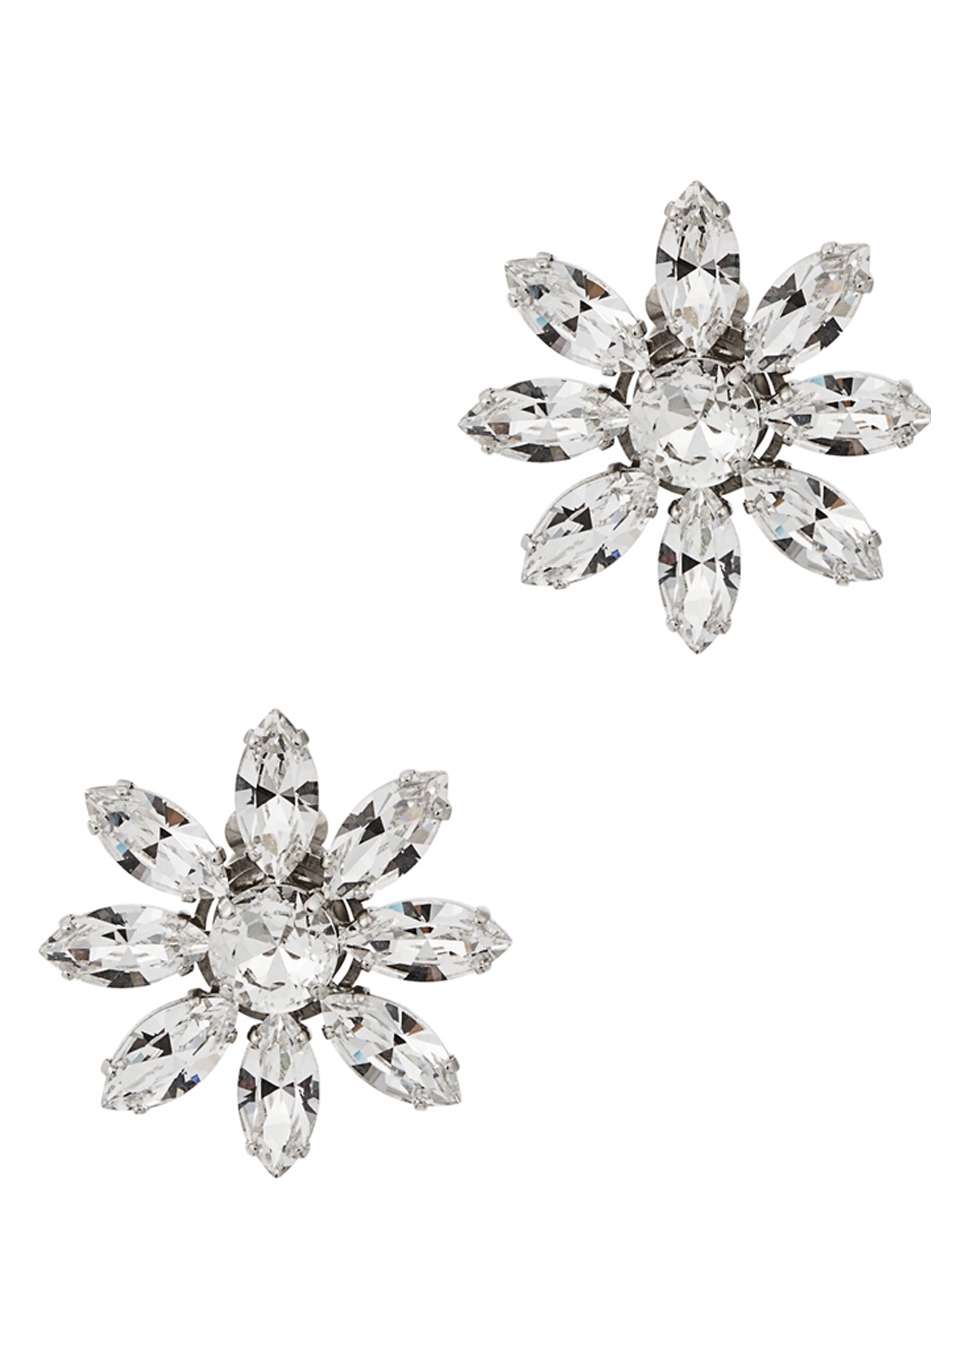 CA&LOU Lea Crystal-Embellished Clip-On Earrings in Silver